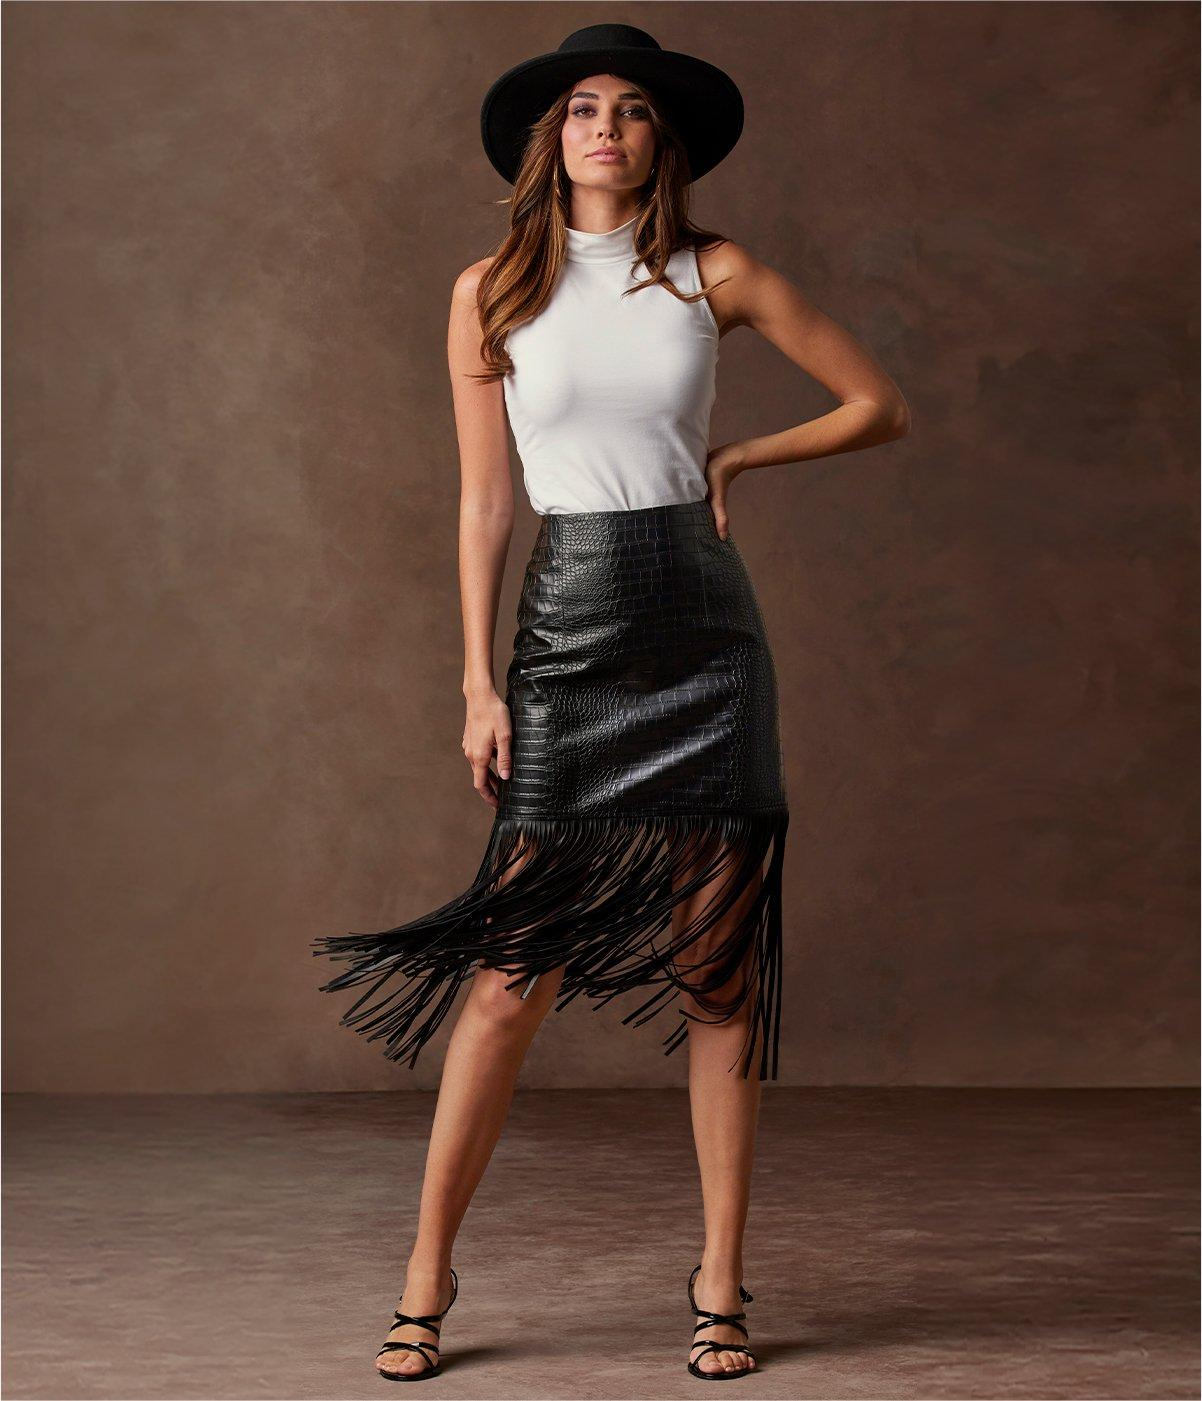 model wearing a white sleeveless turtleneck top, black hat, black crocodile skirt with fringe, and black strappy heels.